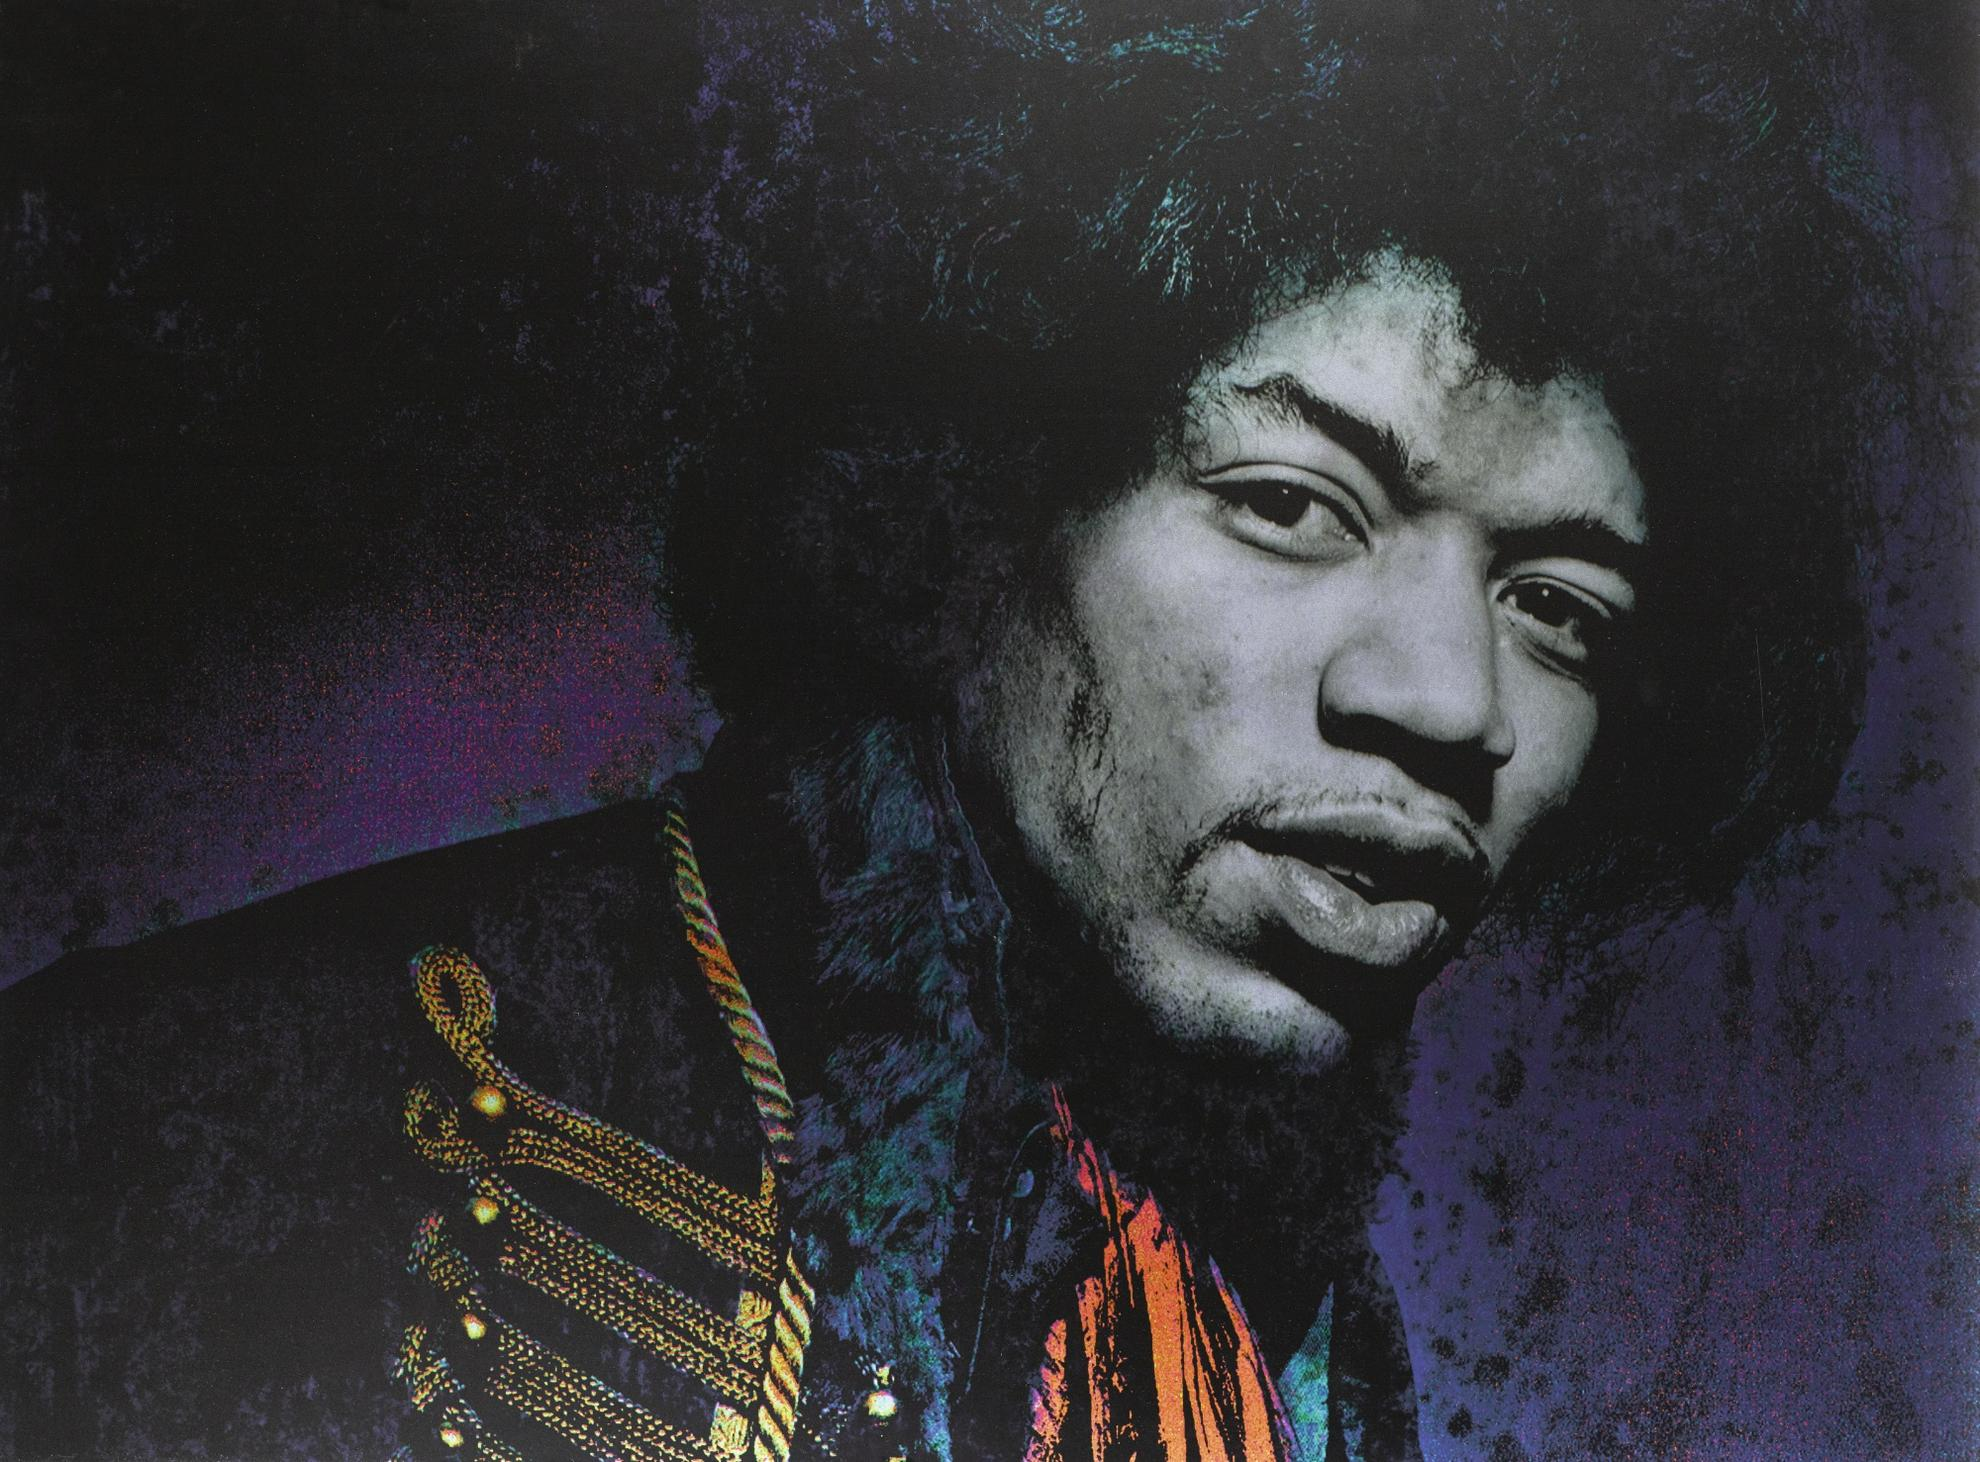 Gered Mankowitz-Jimi Hendrix, Blue Metal, Masons Yard-1967